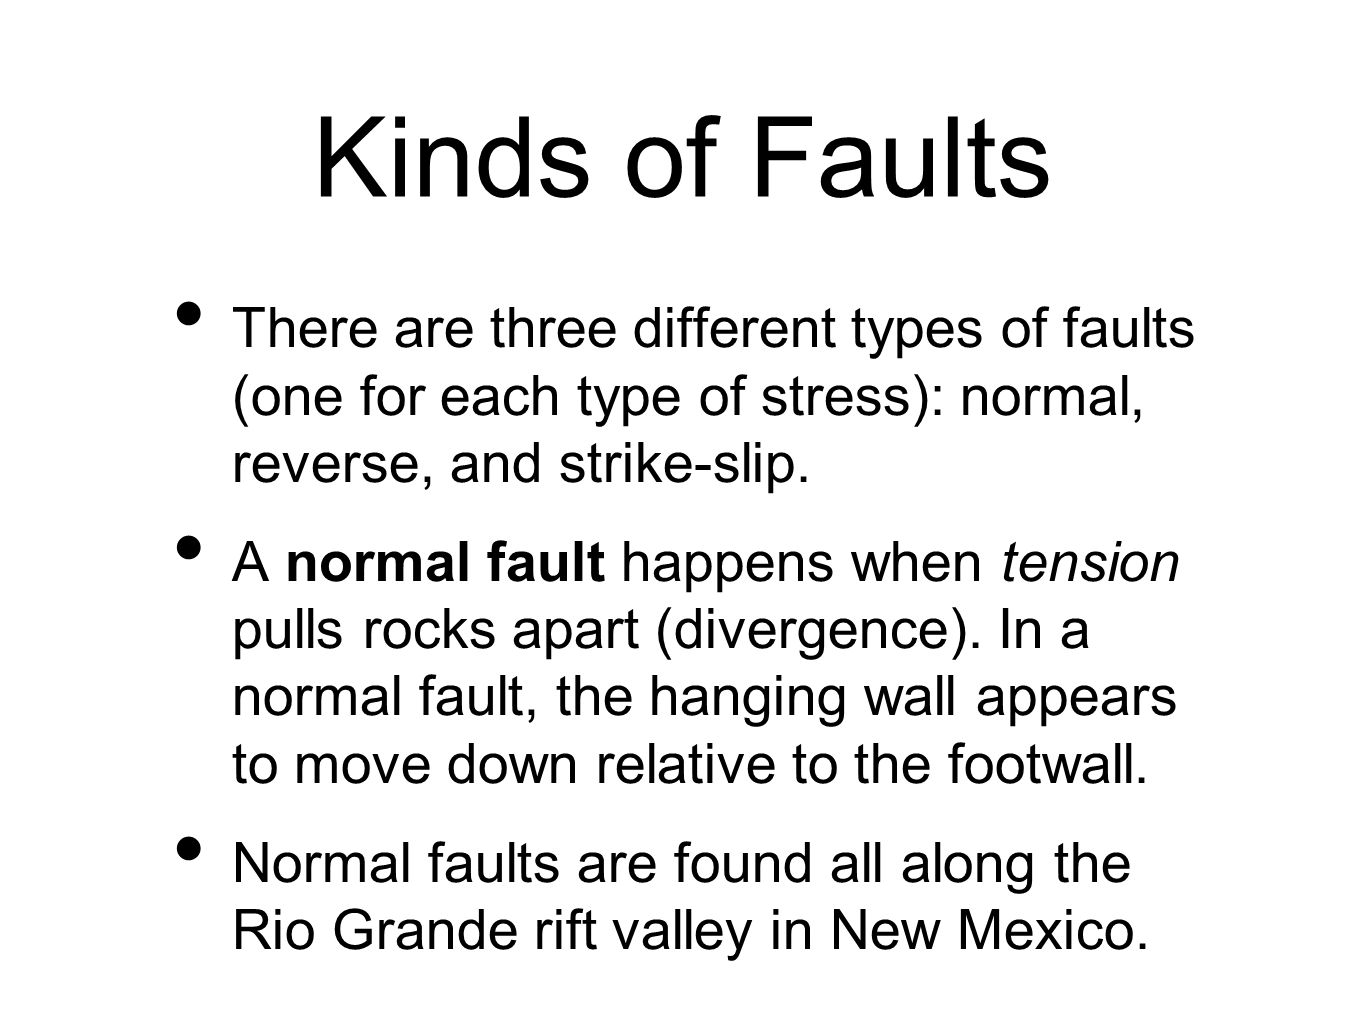 Kinds of Faults There are three different types of faults (one for each type of stress): normal, reverse, and strike-slip.